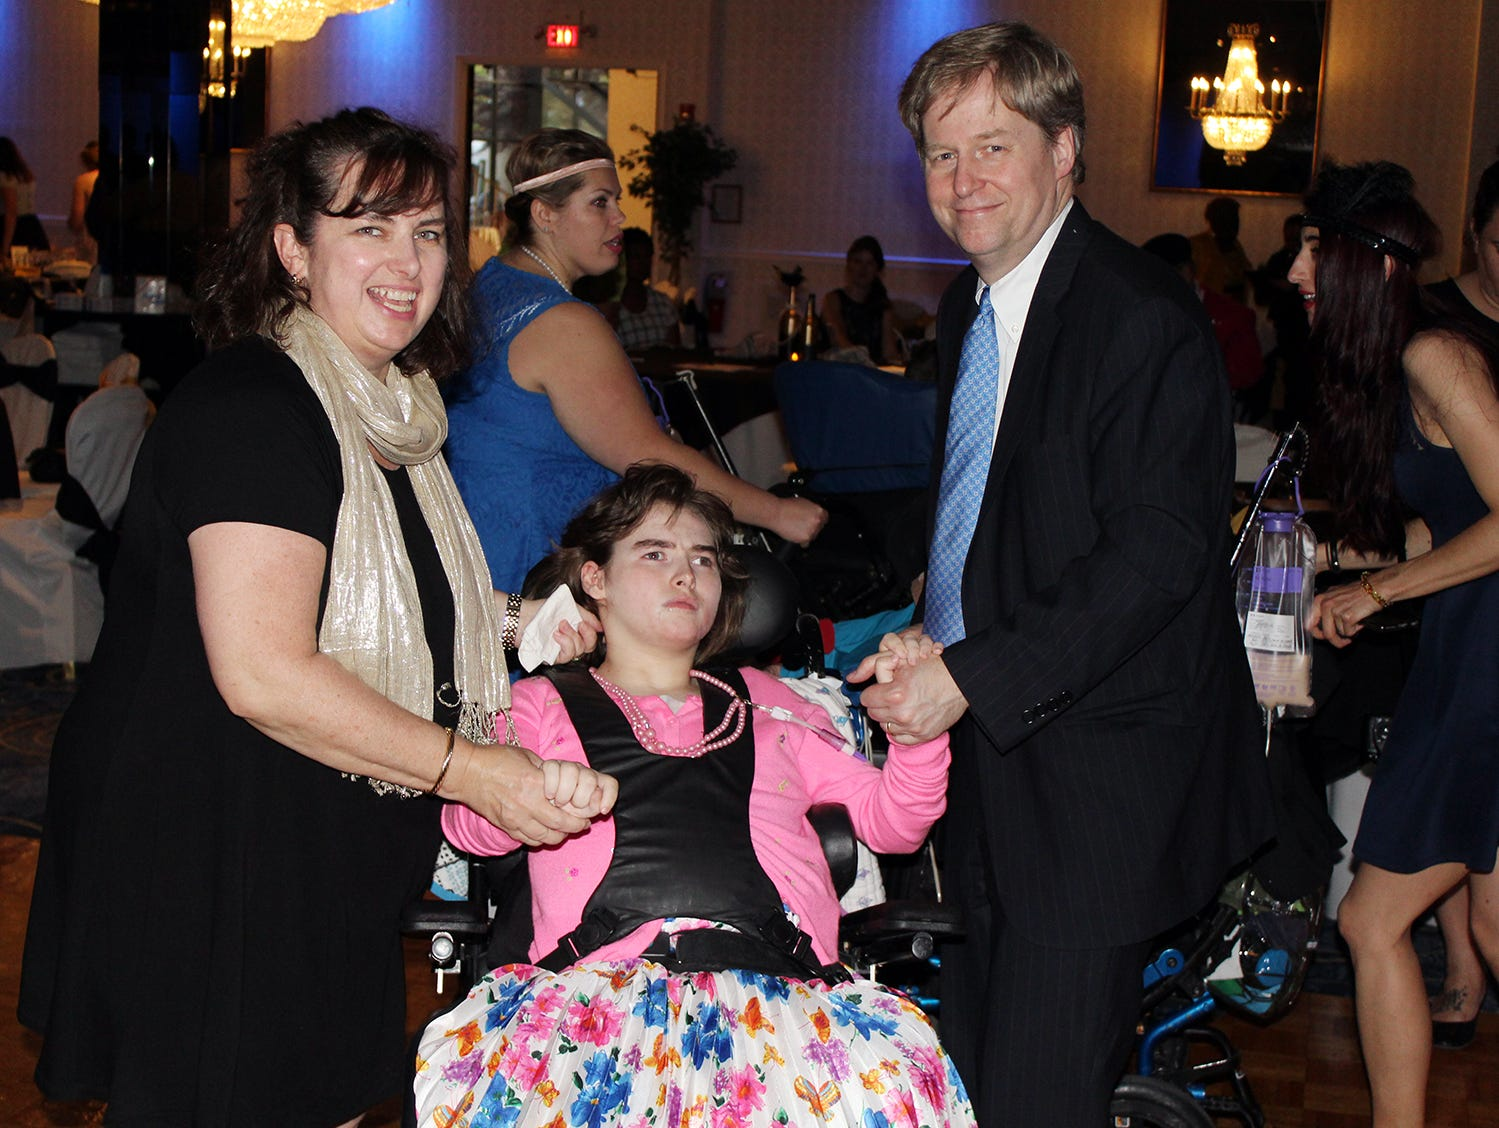 Colleen and David Blaxill of Skillman attend the Matheny Prom with their daughter, Meghan, a resident of Matheny.